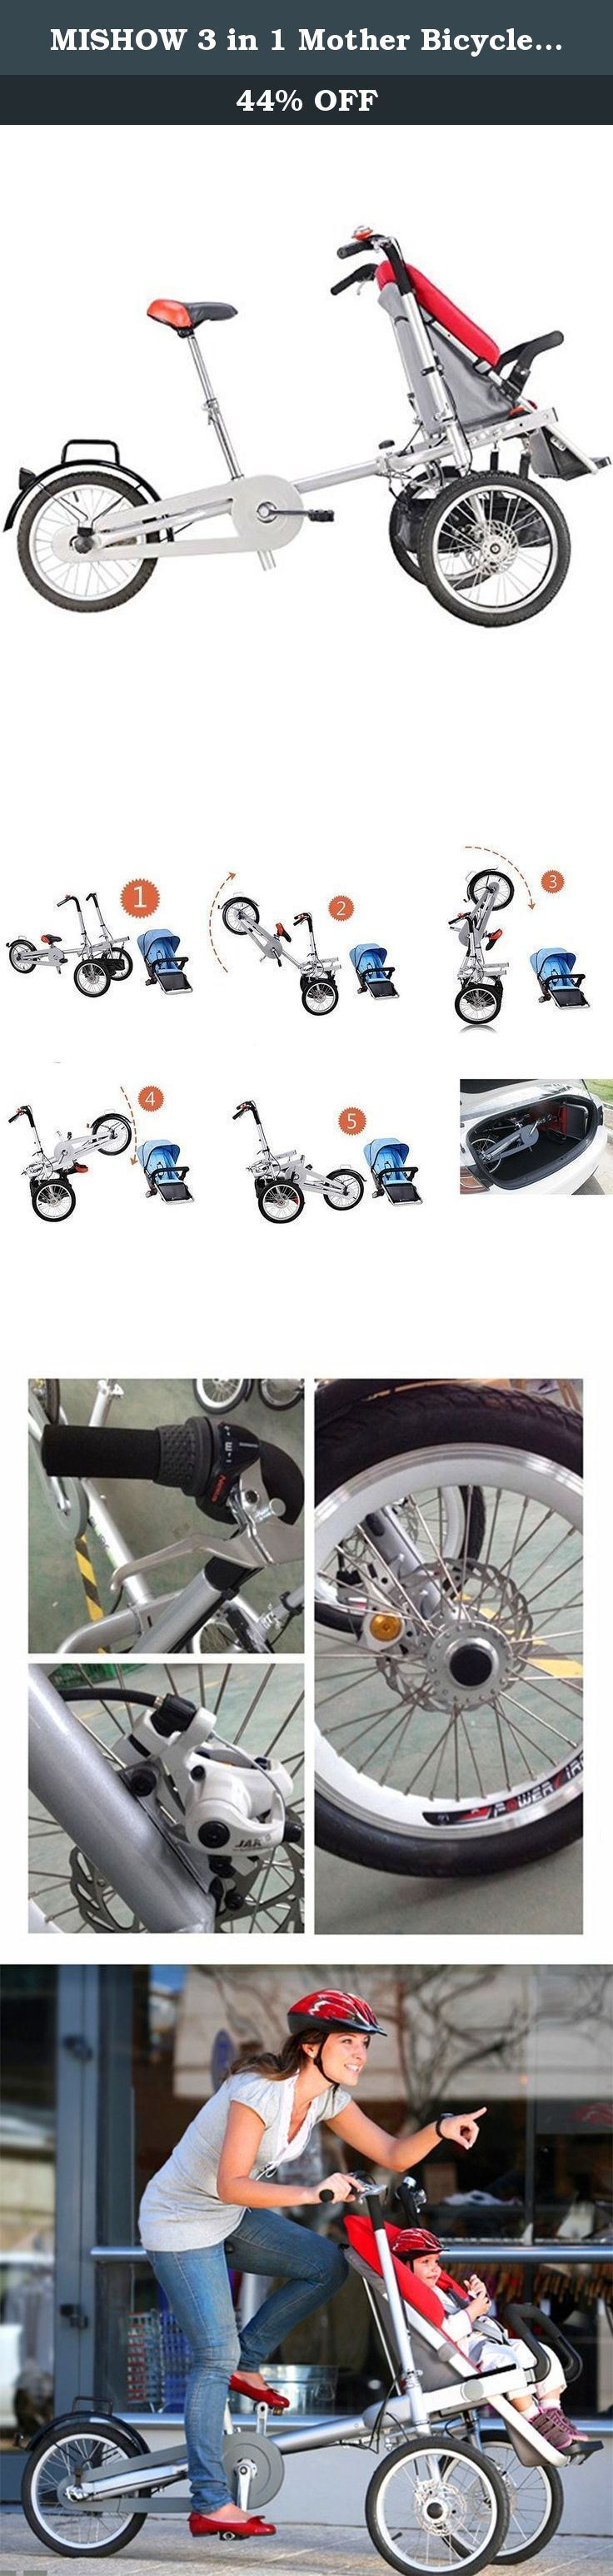 MISHOW 3 in 1 Mother Bicycle Baby Stroller Pushchair 3 Wheel Bike Folding Child Cargo Bicycle MBTS01Y. This Mother Baby Stroller(Model number: MBTS01Y)which is a registered trademark in US recognized by American Law and Amazon Rules, is uniquely designed for mother who has baby(6 month-6 years old) with high quality ,safe,creative ,personalized ,comfortable, convenient as well as durable. This Bike Stroller is a multifunctional vehicle designed for families on the go.It is a baby stroller...